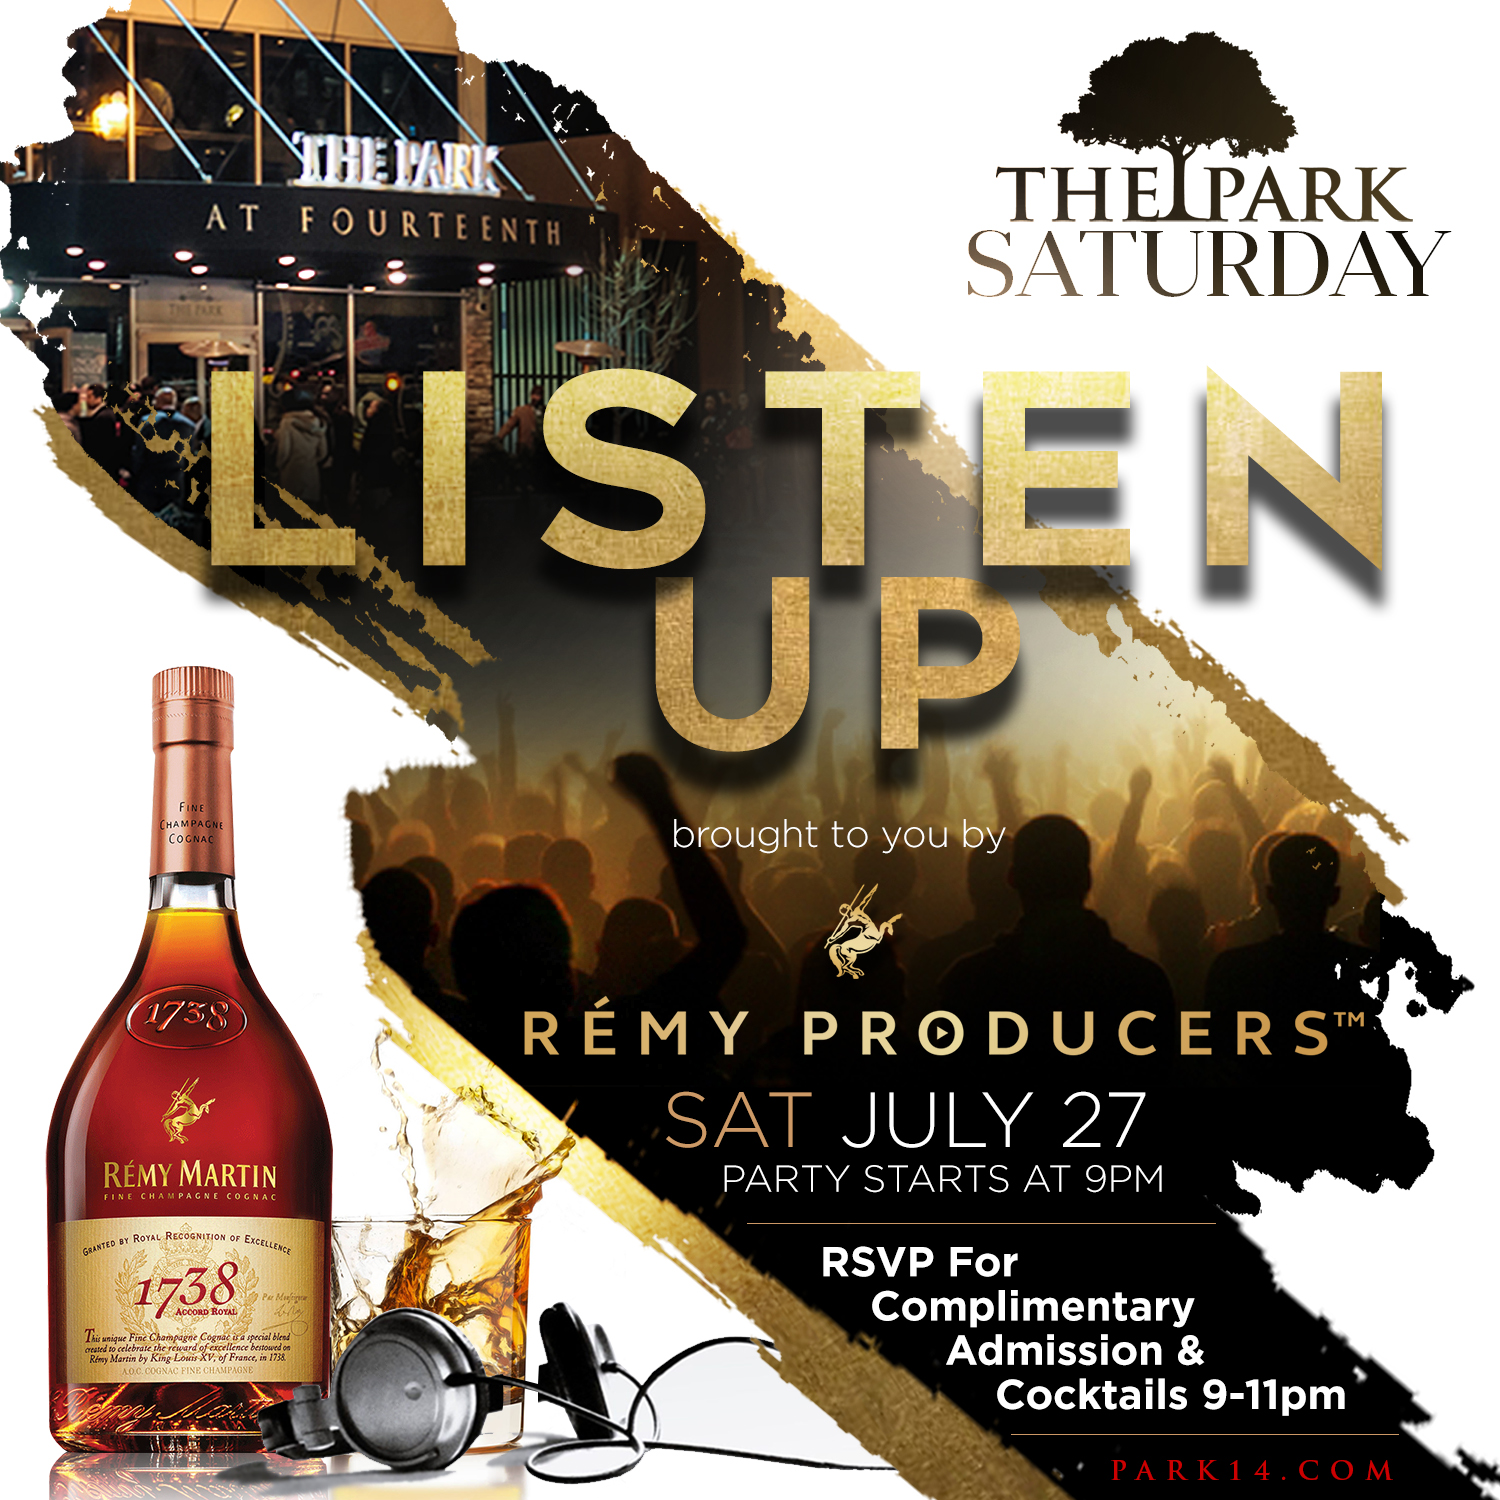 Listen Up Remy Saturday Flyer v2.jpg